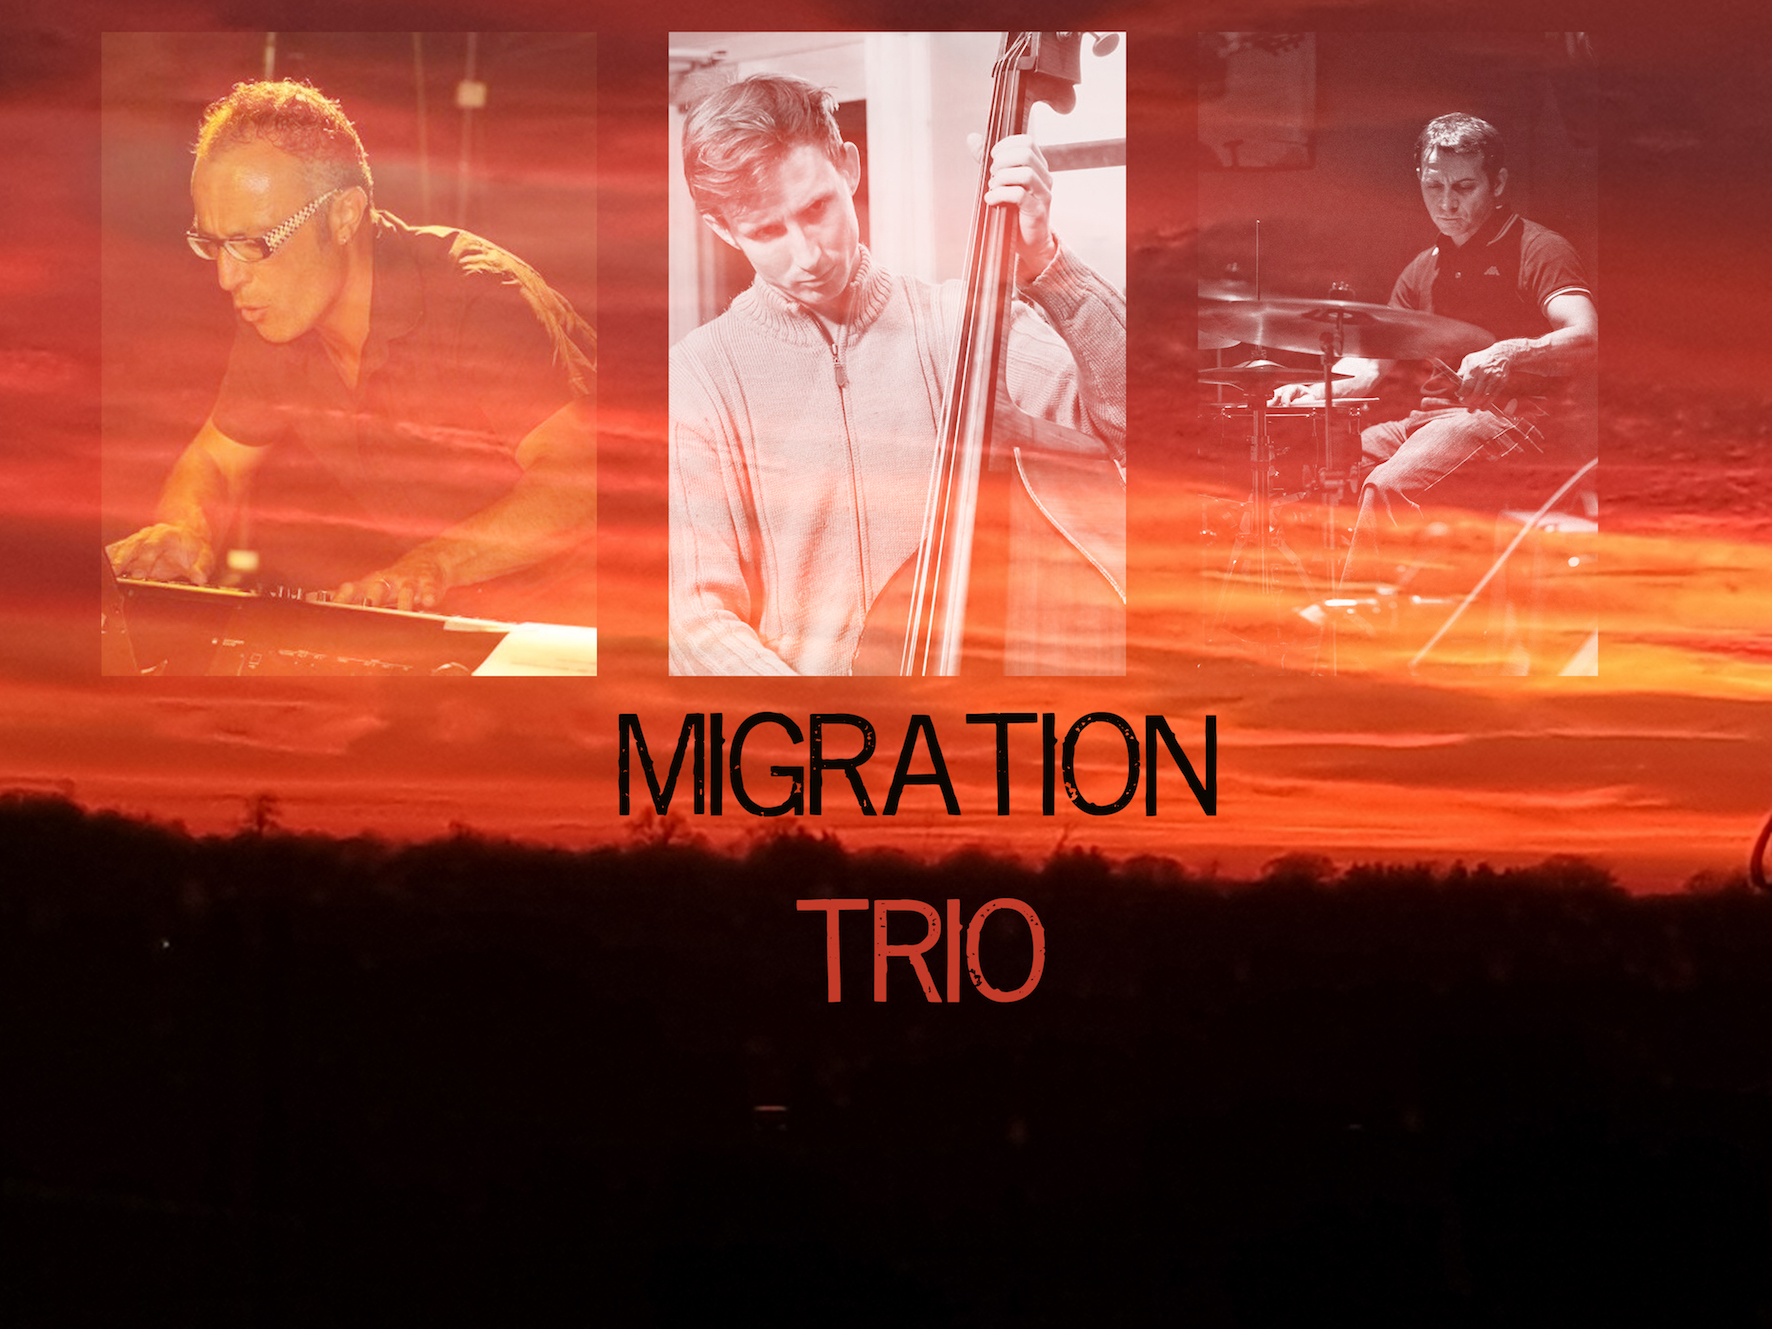 MIGRATION TRIO - JAZZDOOR 7PM / MUSIC 8.30PM£10 / £9 / £0 (BK)EMAIL TO RESERVE